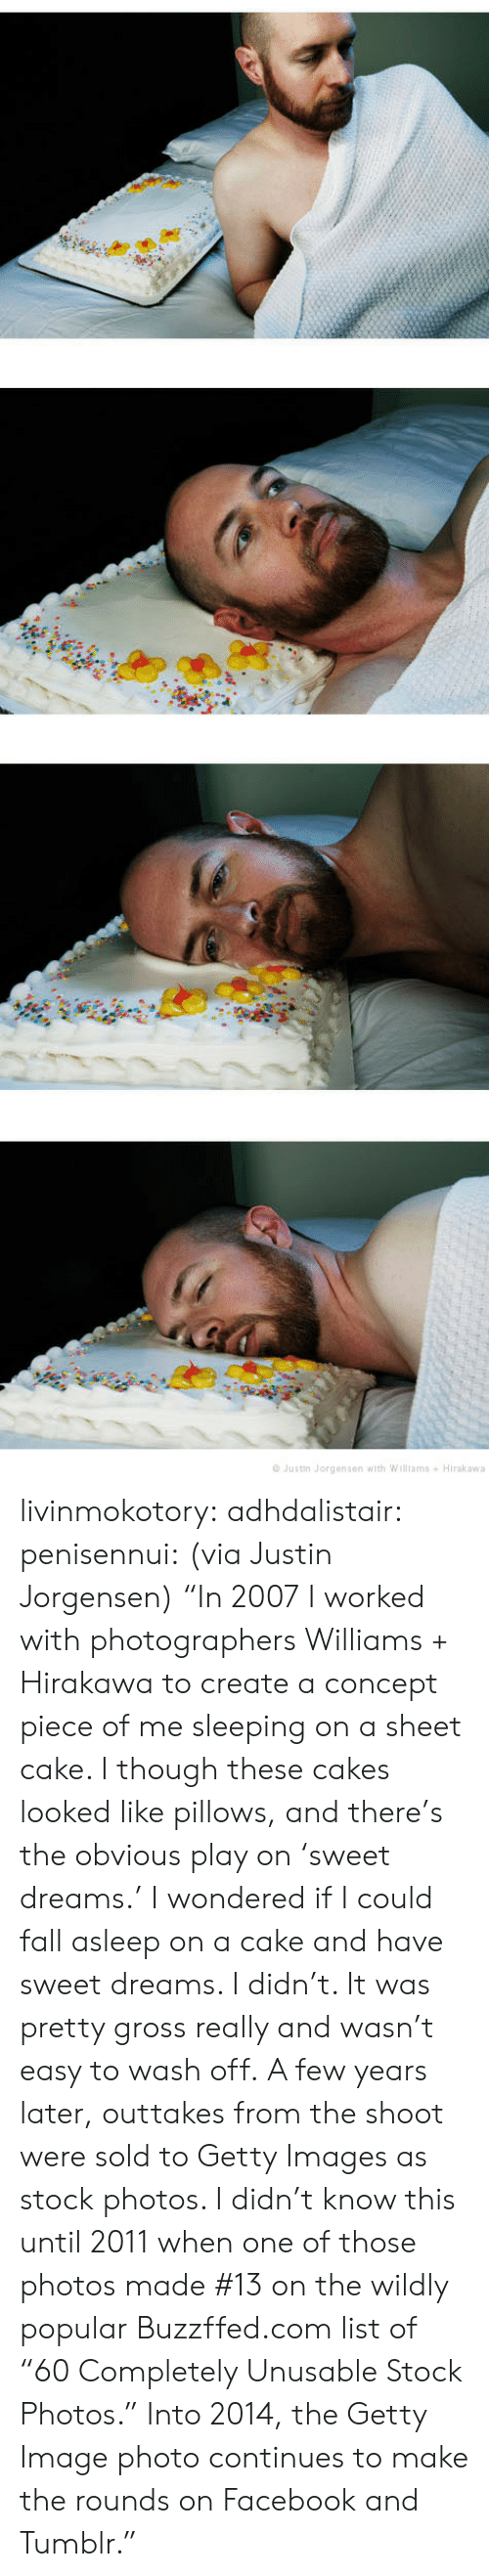 """Image Photo: Justin Jorgensen with Williams+ Hirakawa livinmokotory:  adhdalistair:  penisennui:  (via Justin Jorgensen) """"In 2007 I worked with photographers Williams + Hirakawa to create a concept piece of me sleeping on a sheet cake. I though these cakes looked like pillows, and there's the obvious play on 'sweet dreams.' I wondered if I could fall asleep on a cake and have sweet dreams. I didn't. It was pretty gross really and wasn't easy to wash off. A few years later, outtakes from the shoot were sold to Getty Images as stock photos. I didn't know this until 2011 when one of those photos made #13 on the wildly popular Buzzffed.com list of """"60 Completely Unusable Stock Photos."""" Into 2014, the Getty Image photo continues to make the rounds on Facebook and Tumblr."""""""